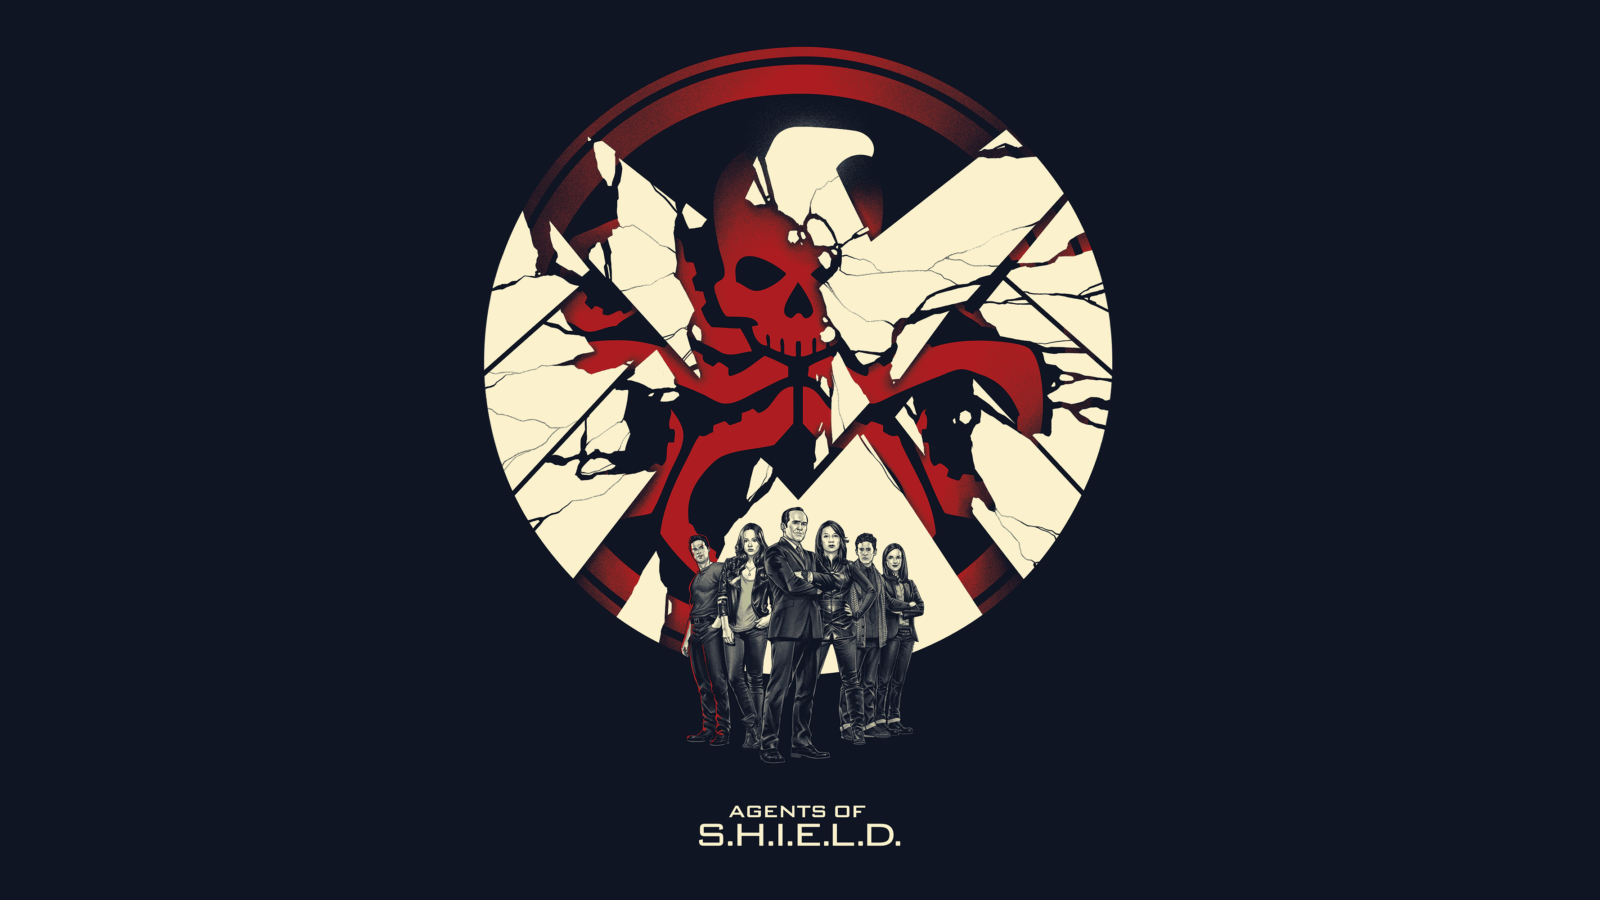 Agents of S.H.I.E.L.D Hydra logotype